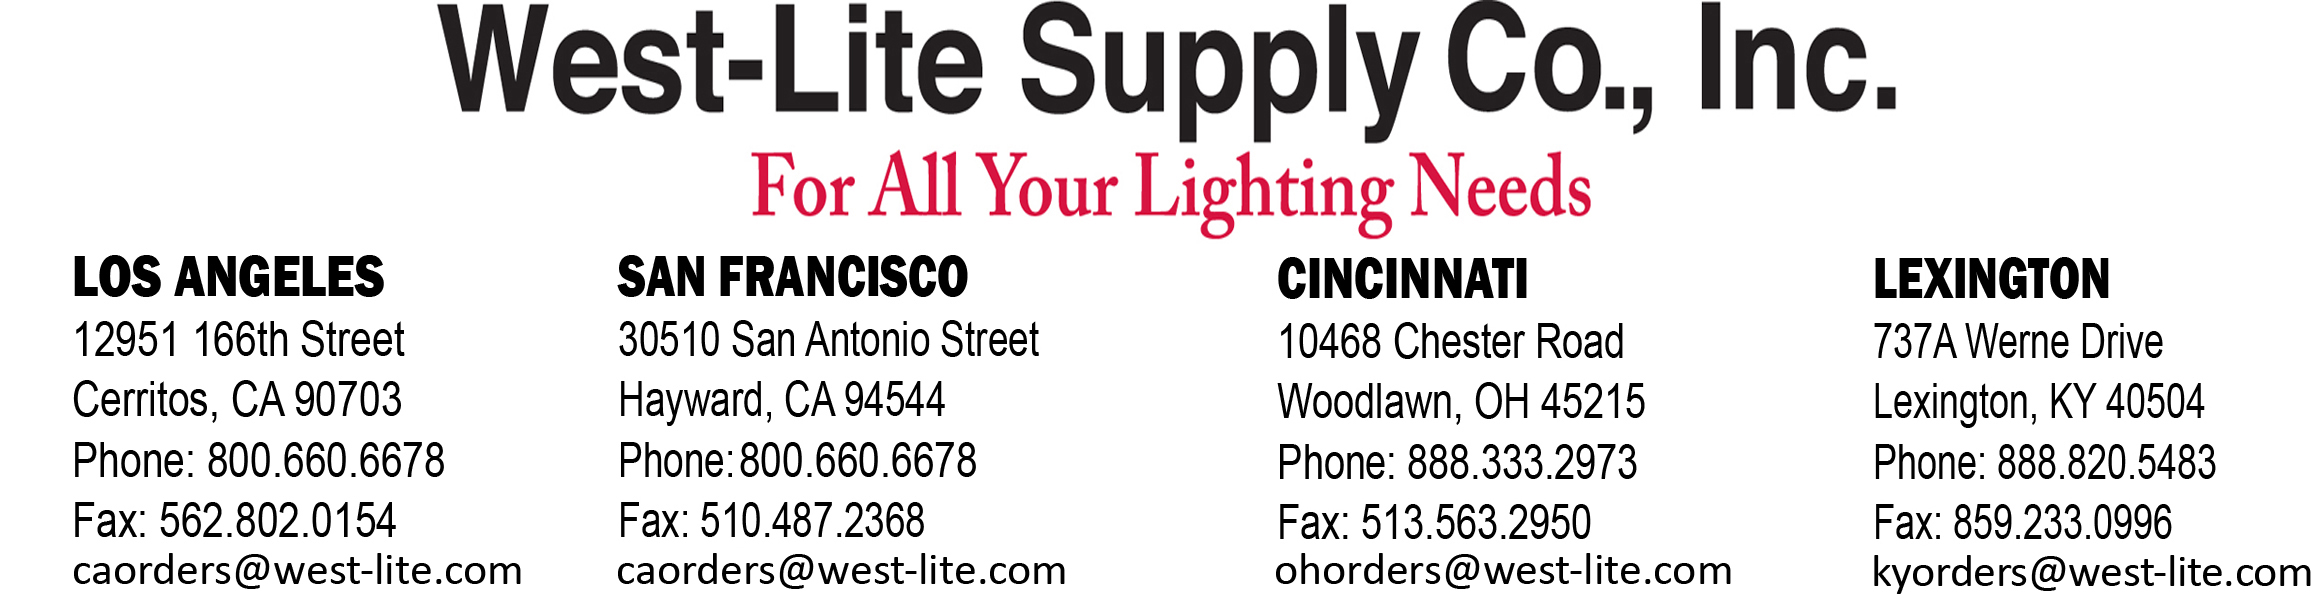 West Lite Supply Company Inc